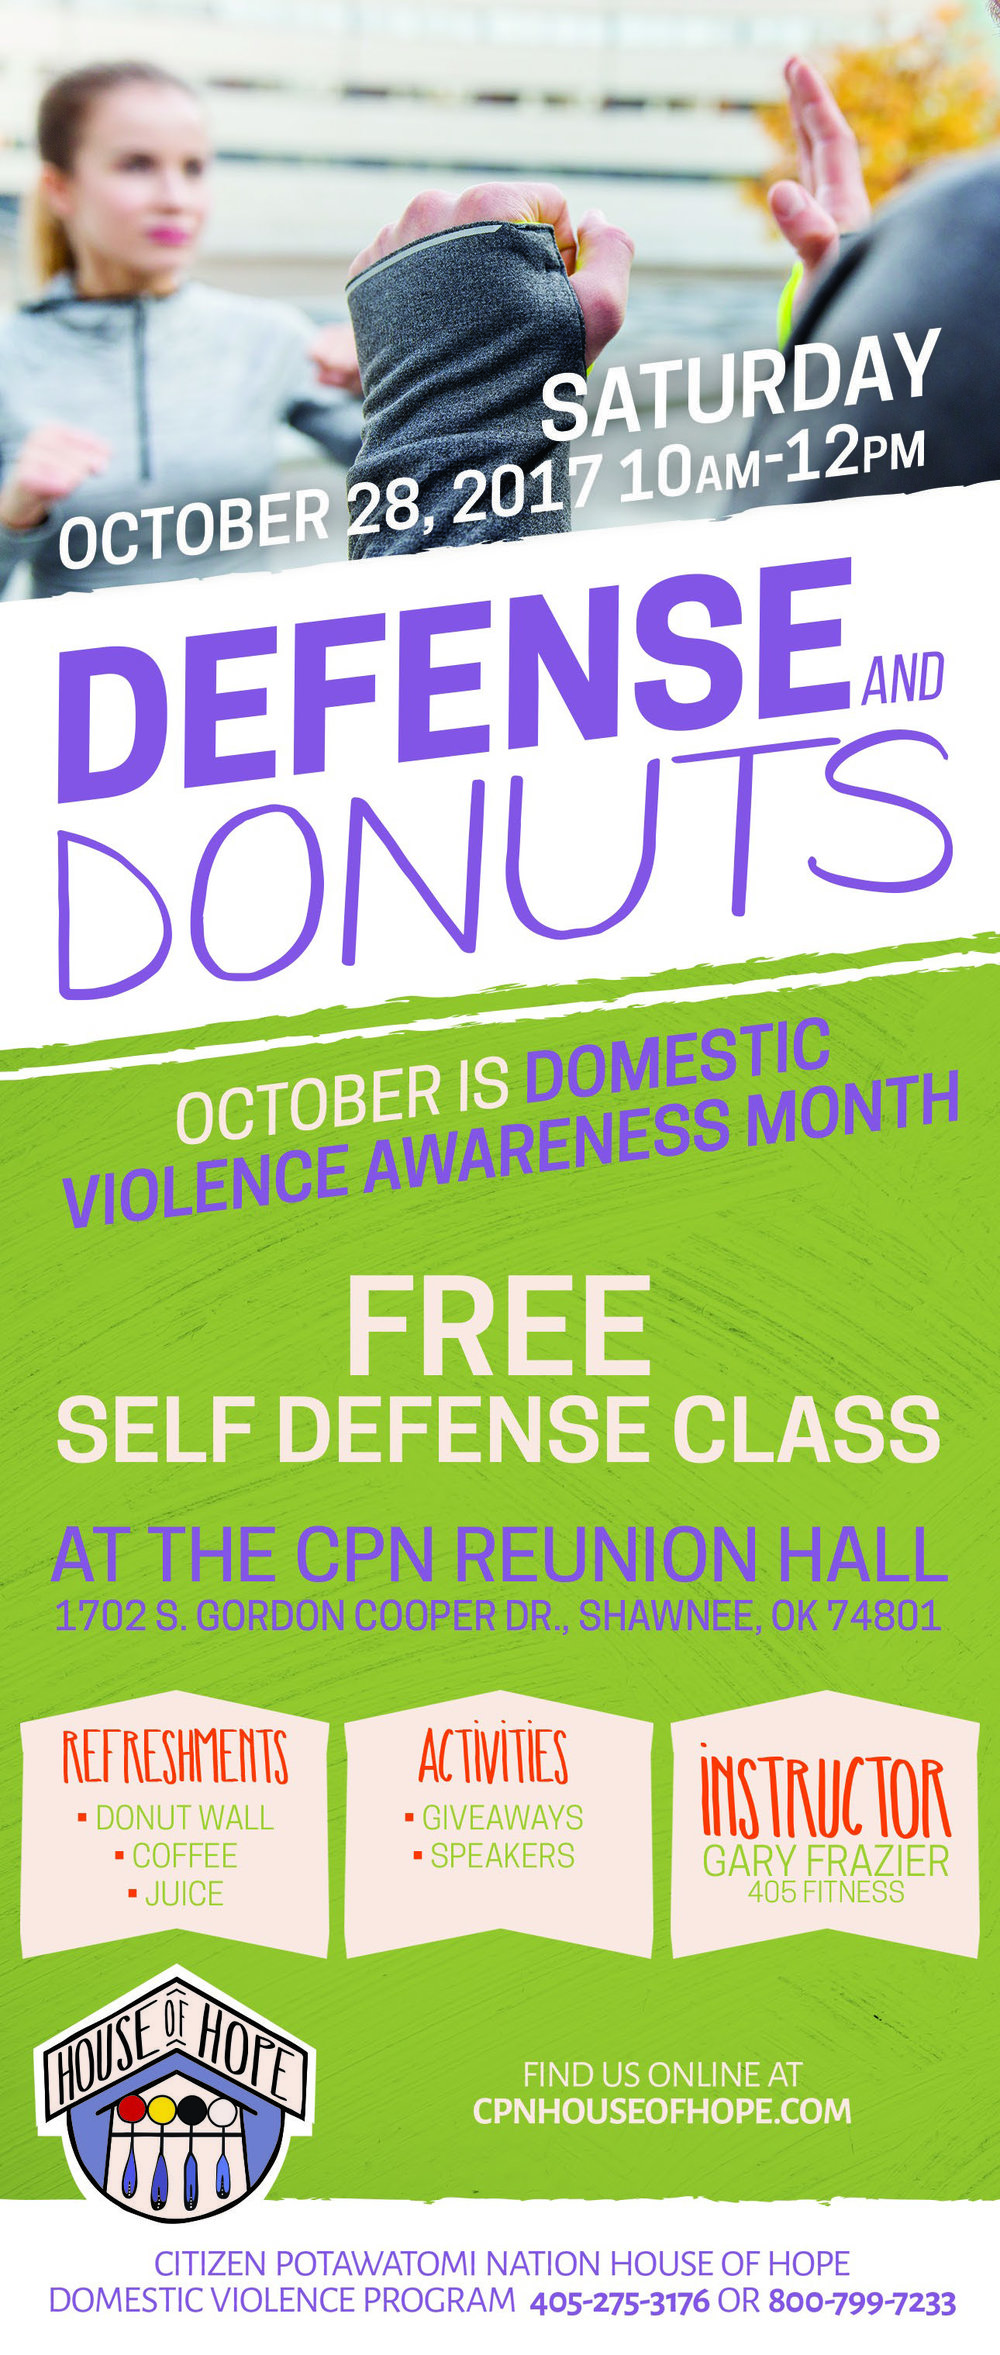 Defense and Donuts flier.jpg